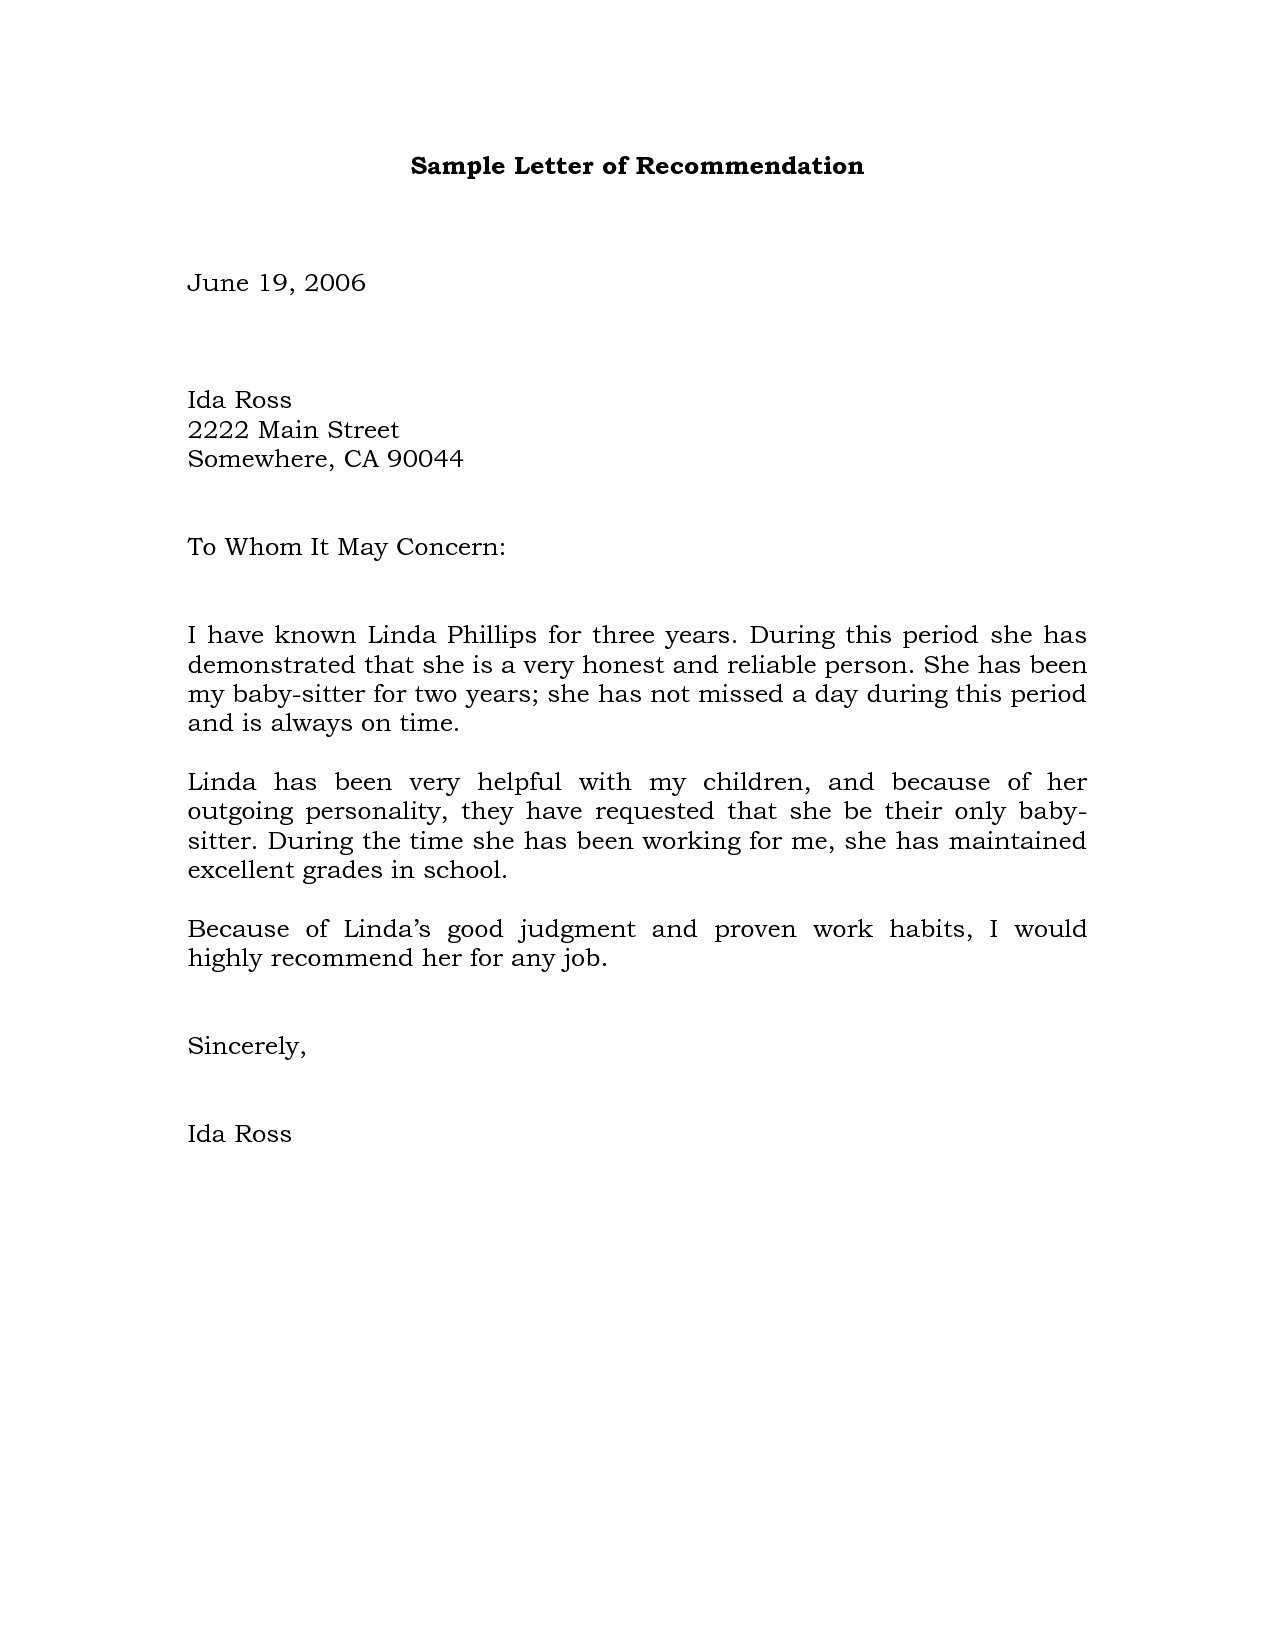 Personal Reference Letter For A Friend Template Collection Letter